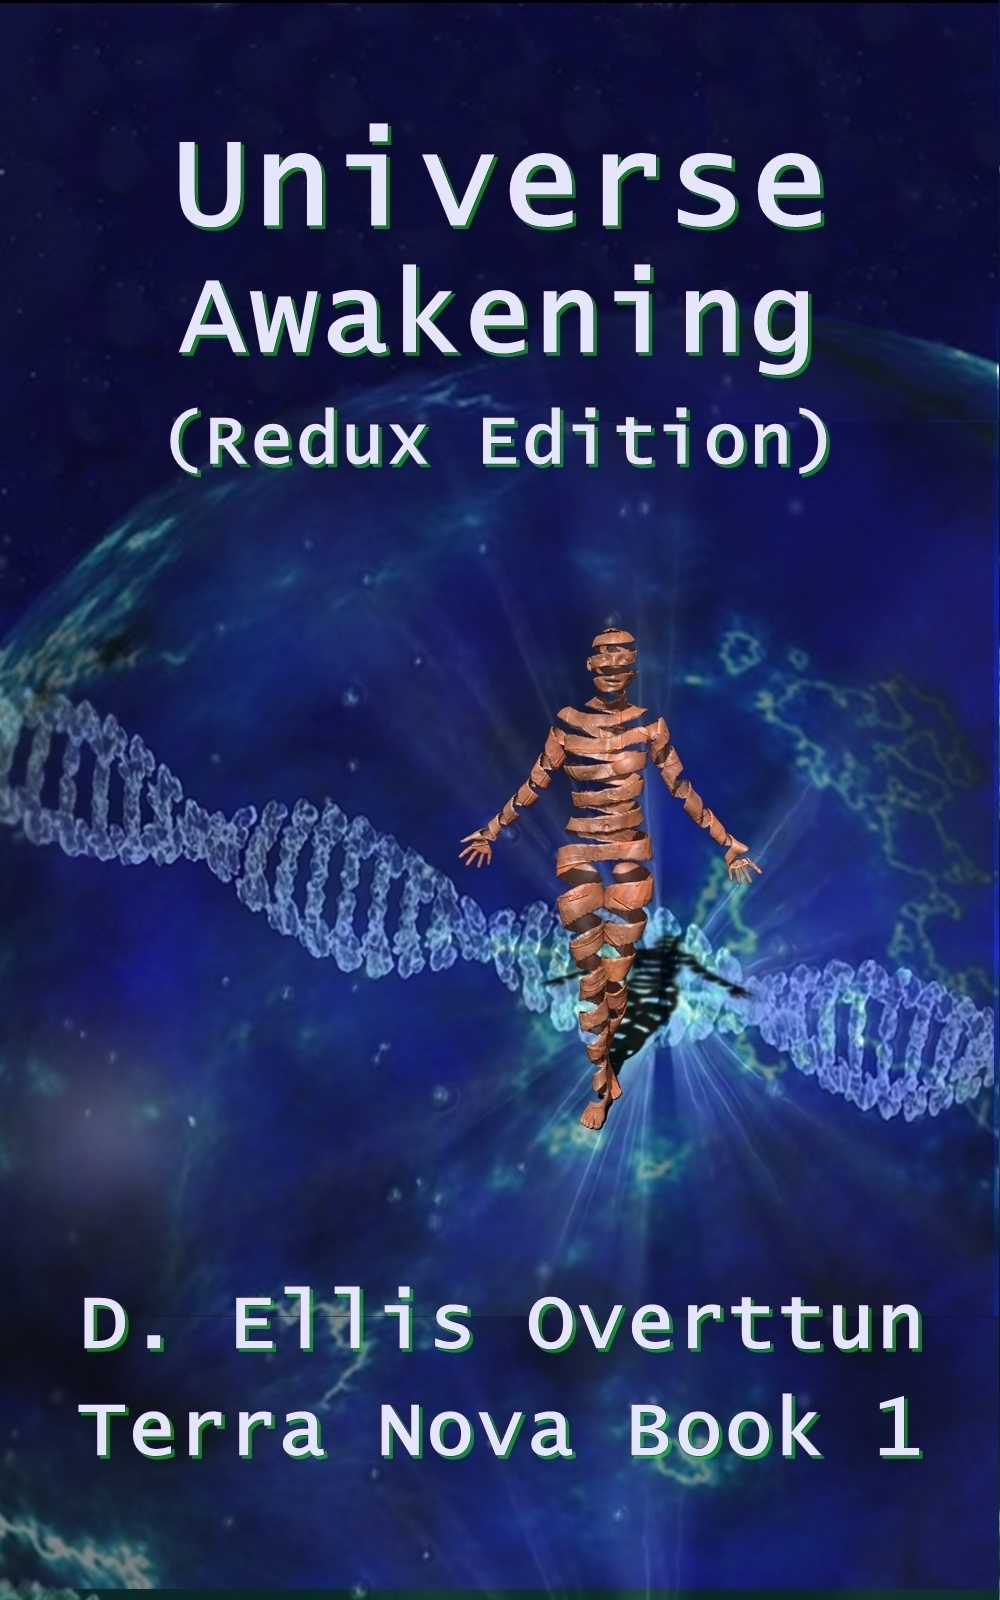 Author David Ellis Overttun's Excerpt from Universe: Awakening (Chapter 1) and Exciting contest